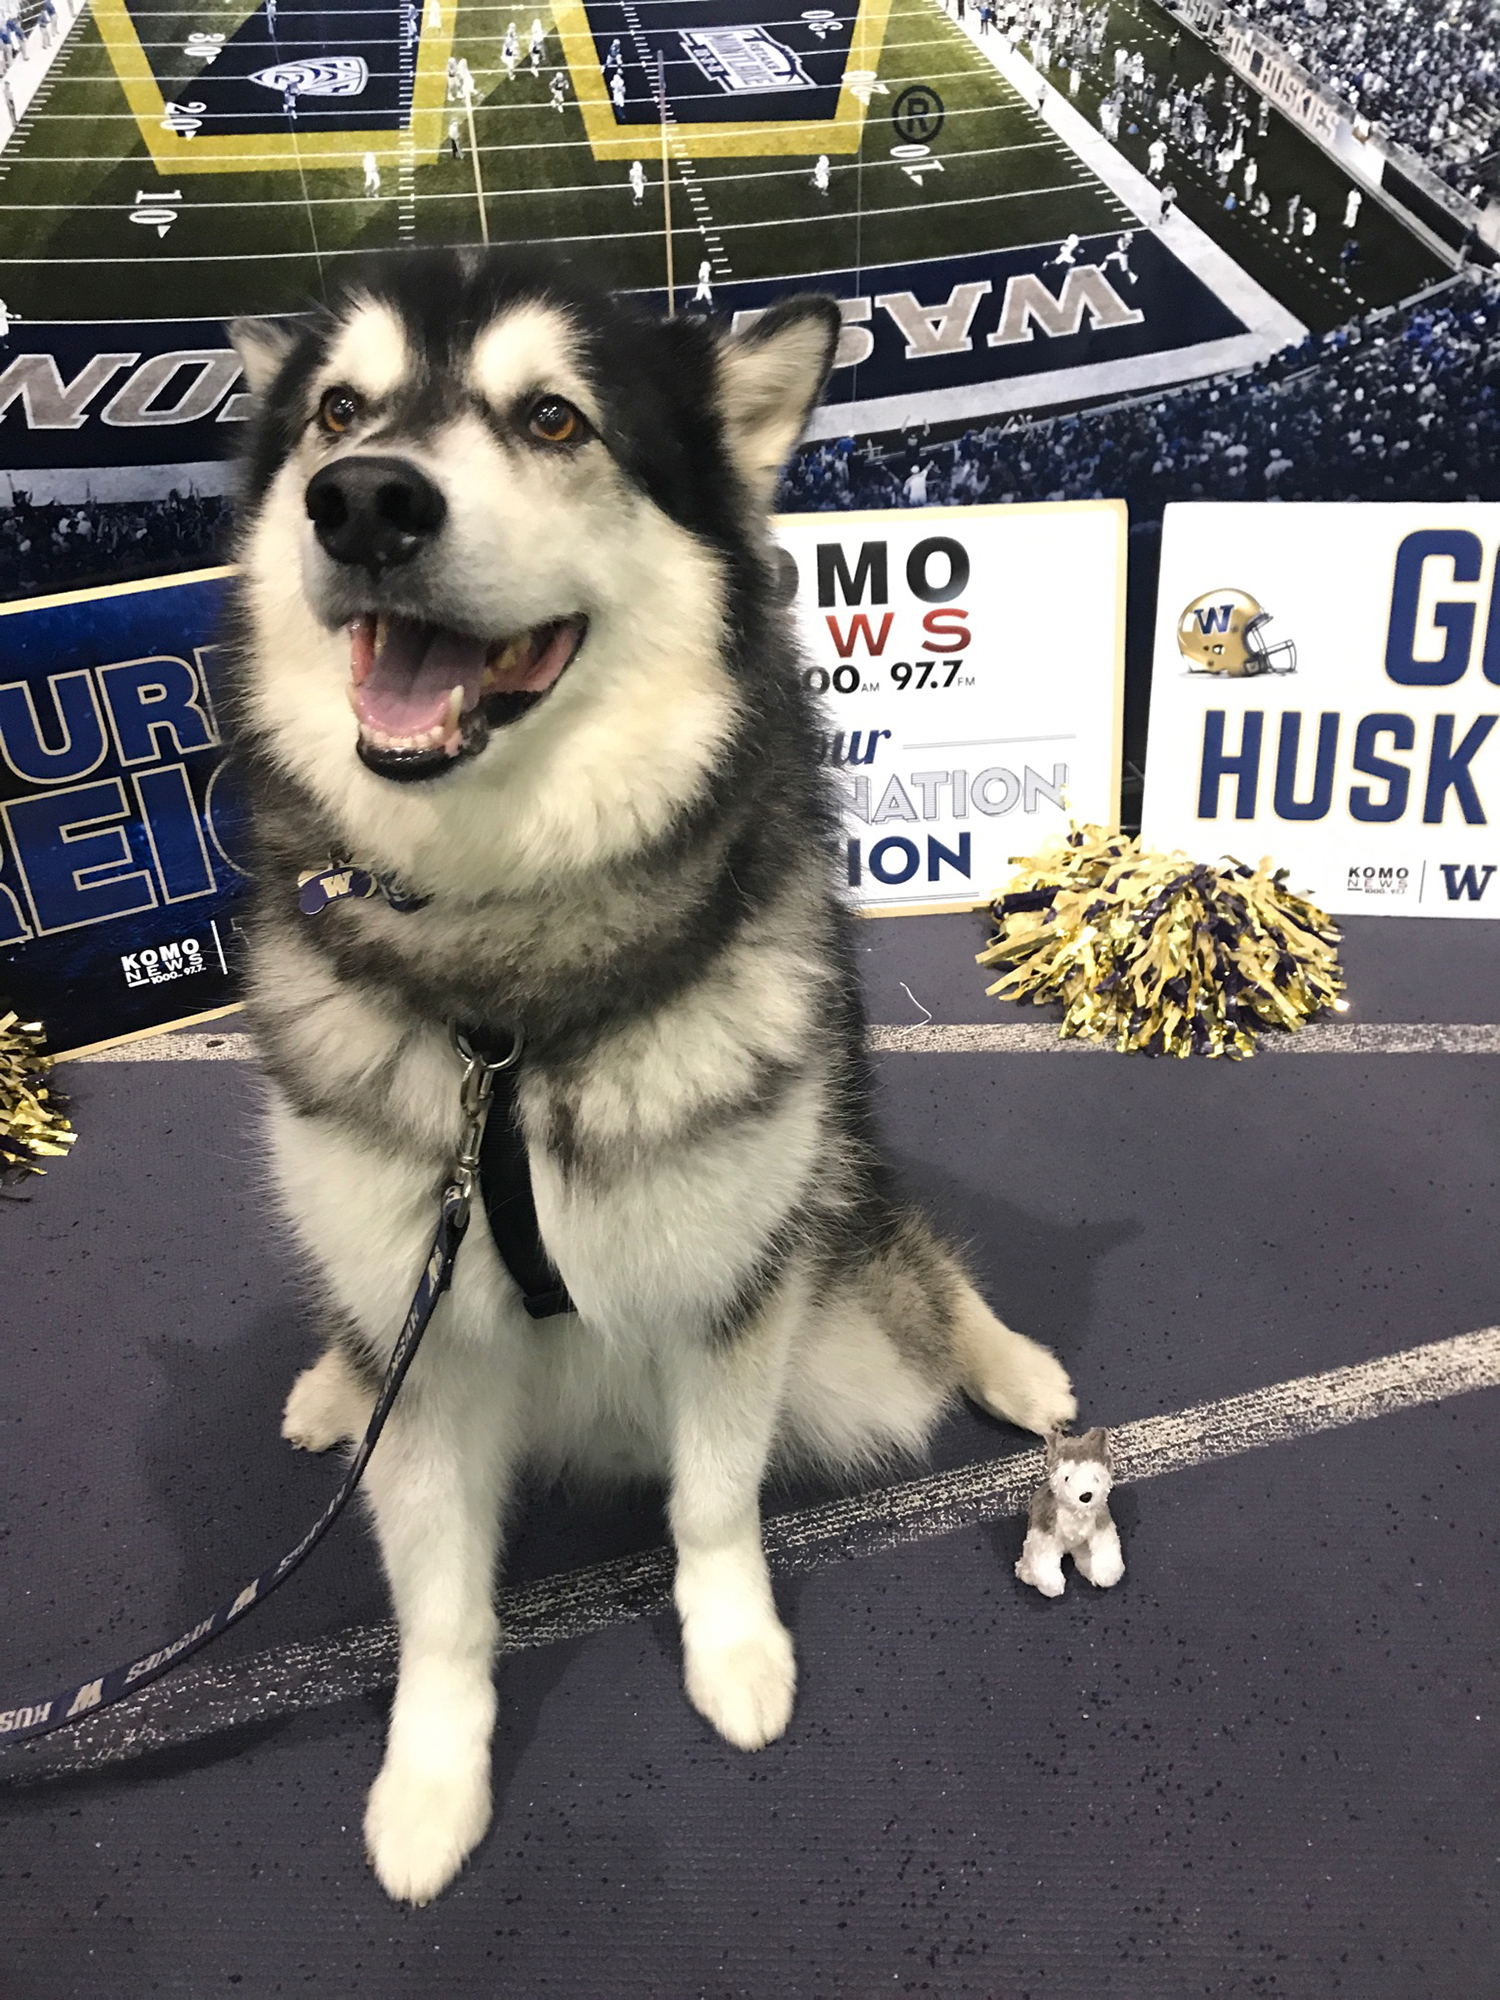 We are so saddened to learn of the passing of Dubs I, the retired goodest mascot of the University of Washington. You gave so many fans, reporters, players and families so much love - we miss you, but we just know you're in DaWg heaven. (Image: Hailey Helber / KOMO Newsradio)